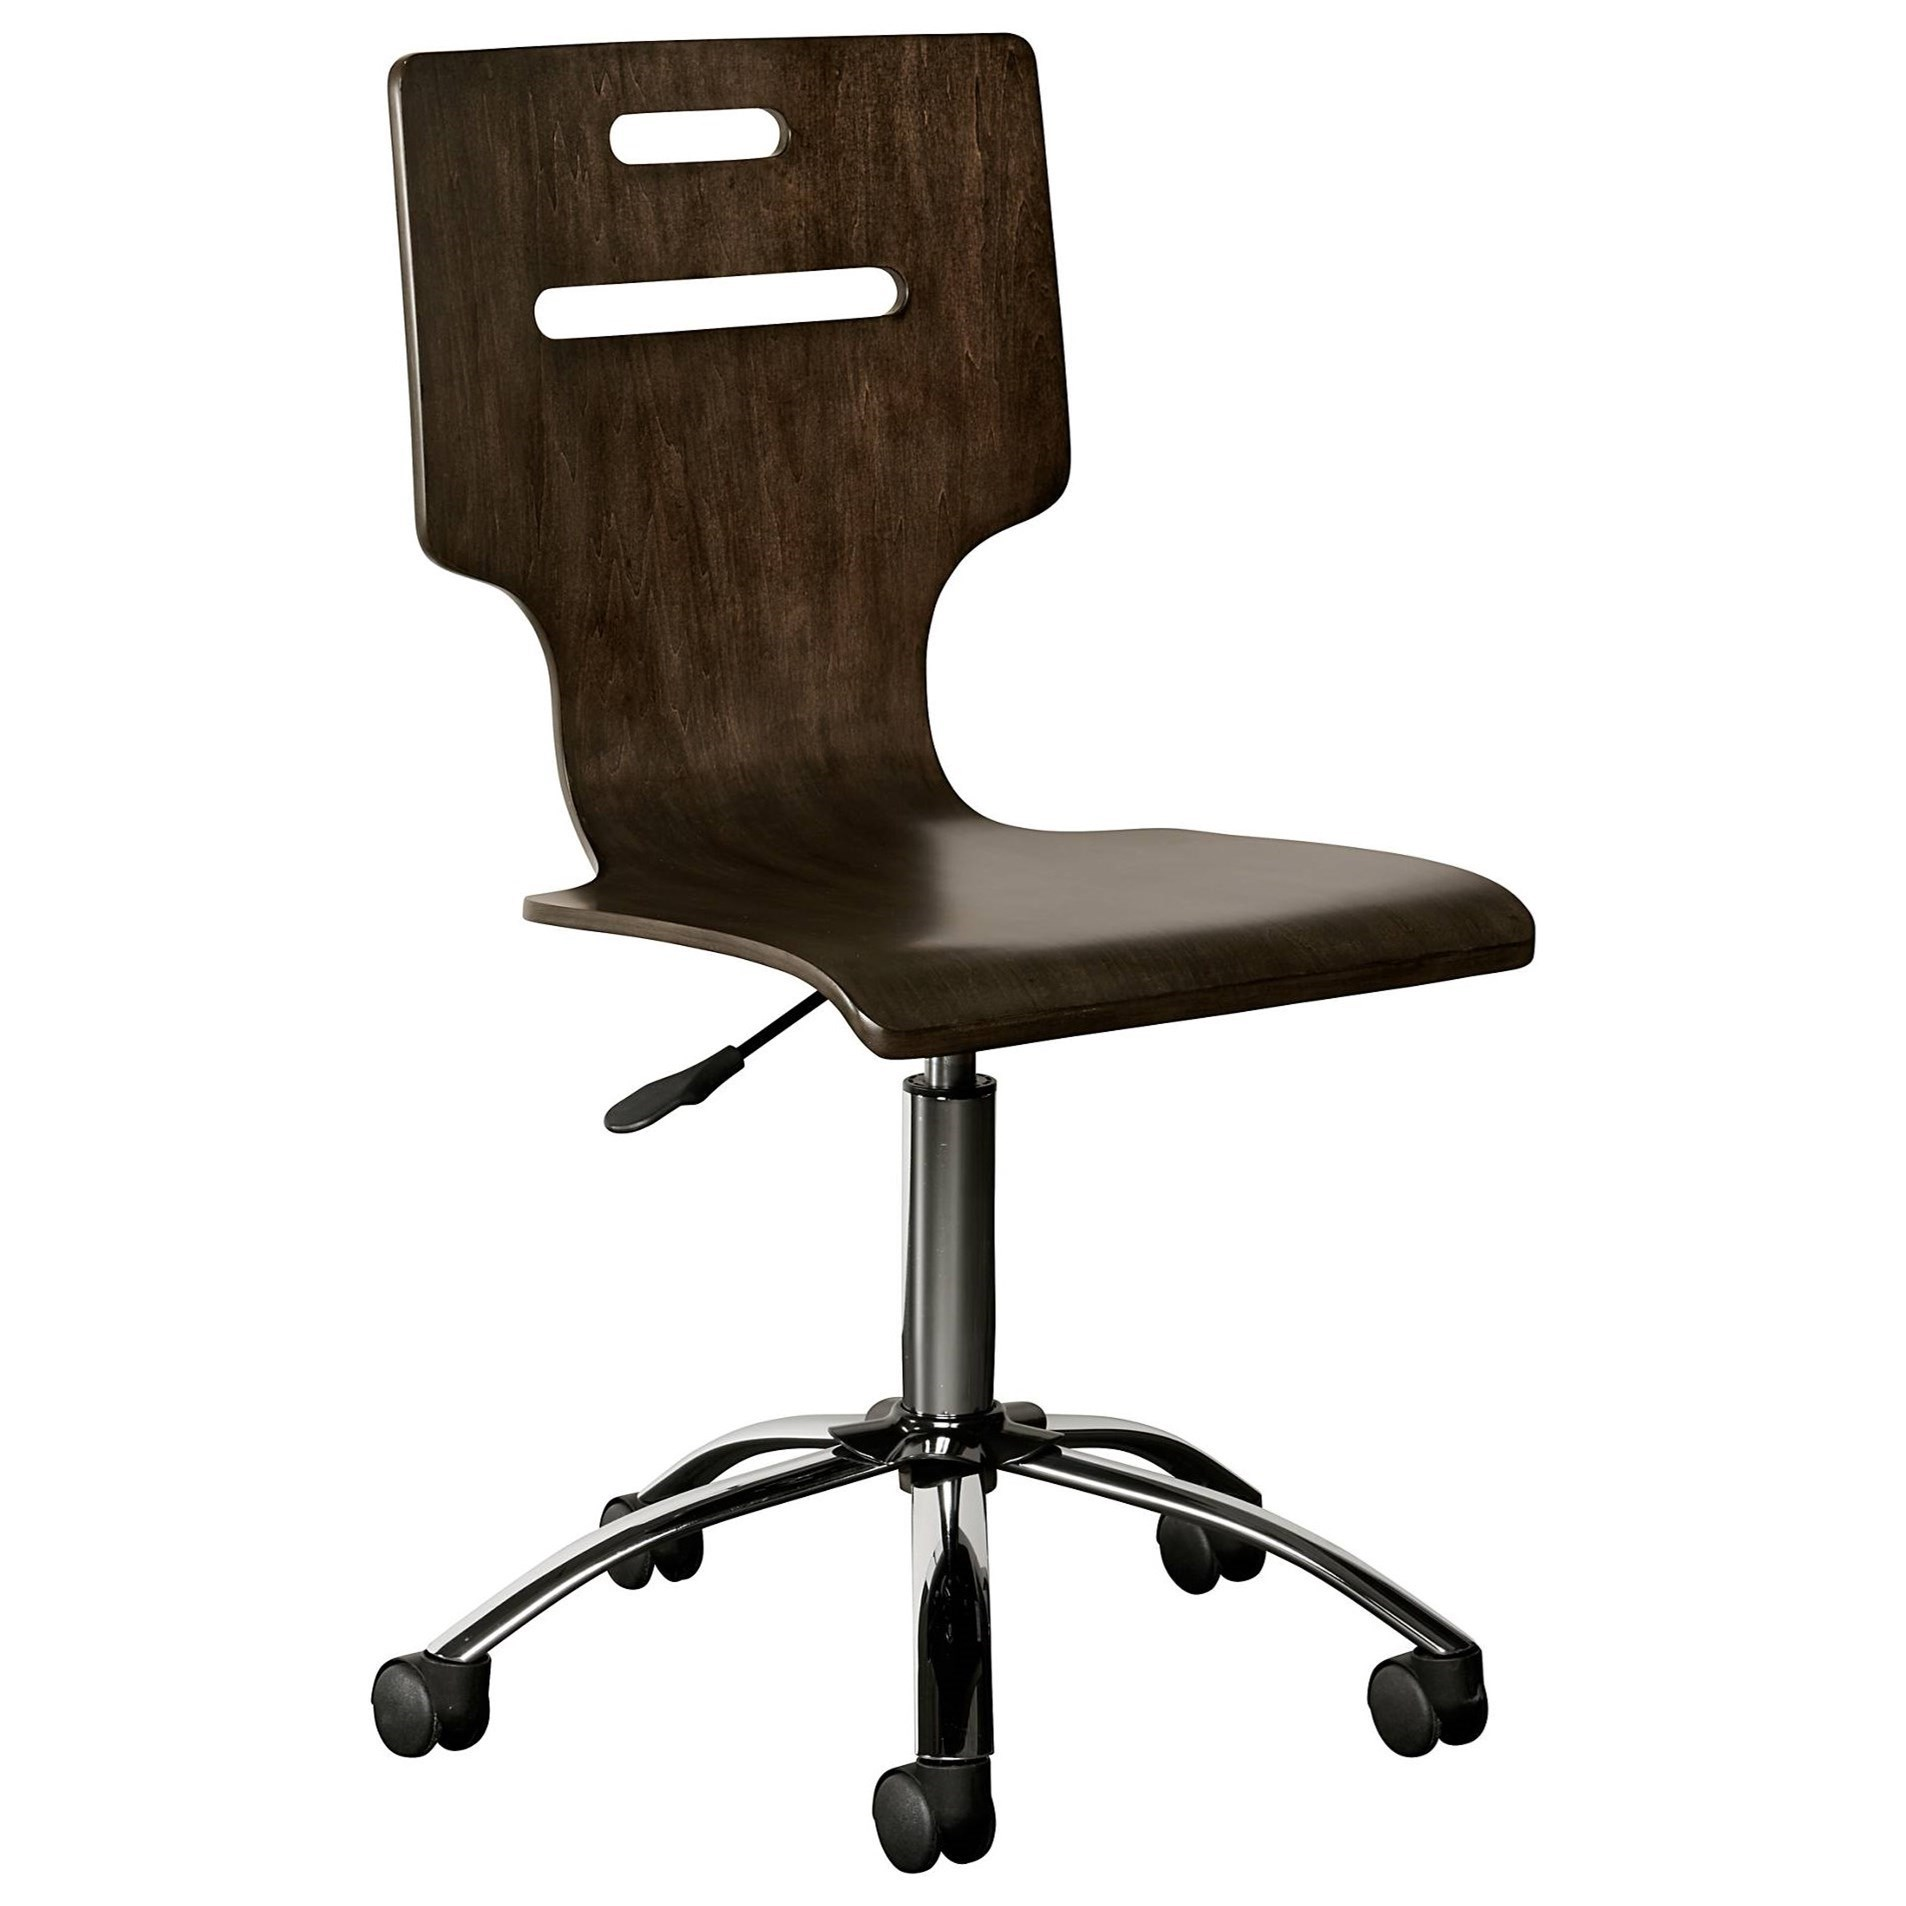 Stone & Leigh Furniture Chelsea Square Desk Chair - Item Number: 584-13-71